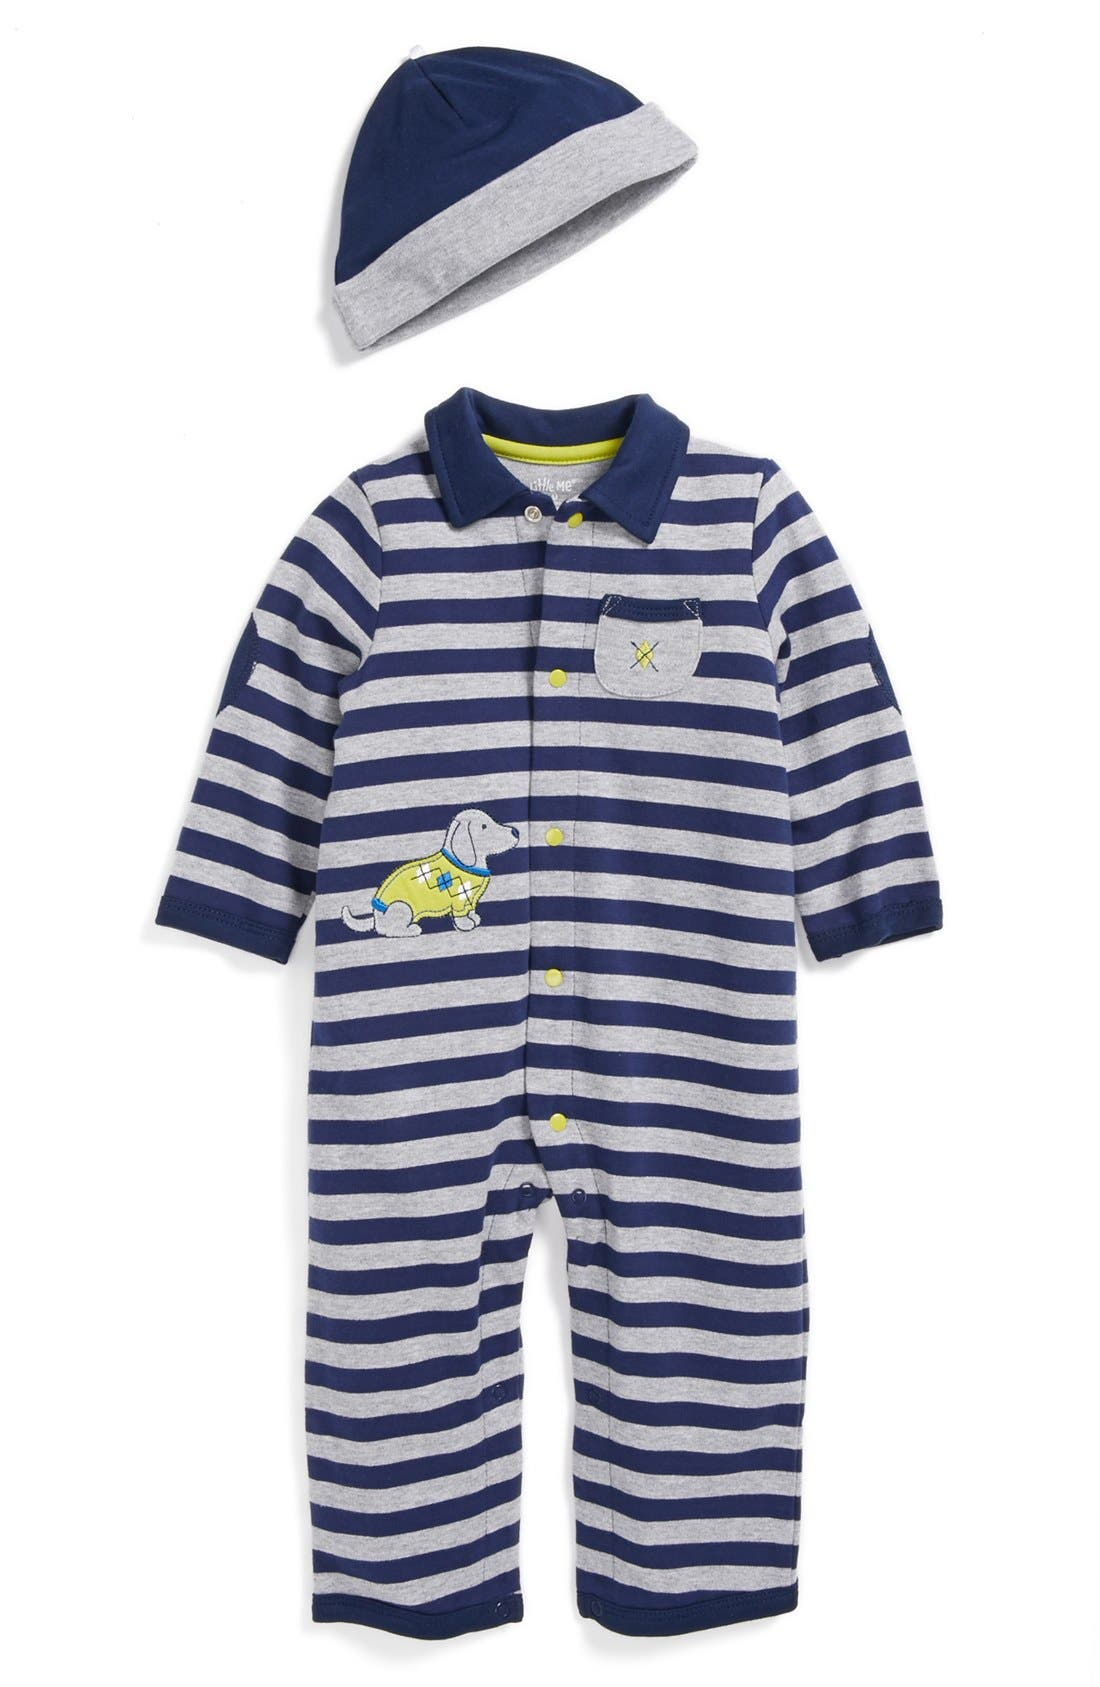 Alternate Image 1 Selected - Little Me Dachsund Romper & Hat (Baby Boys)